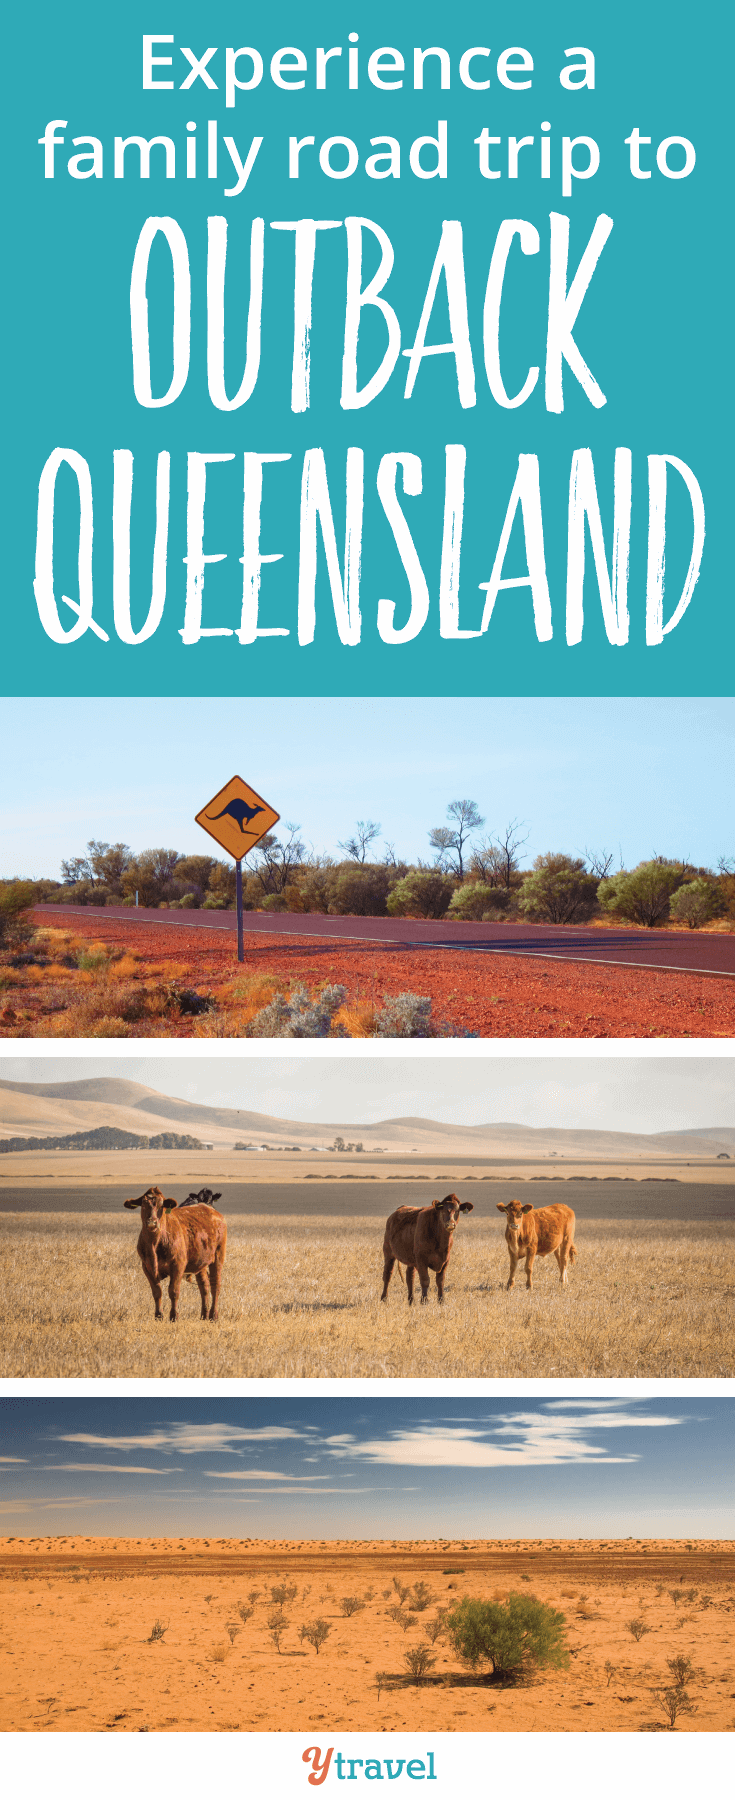 Experience a family road trip to Outback Queensland and check out why we love it and think it's an enriching destination for families.